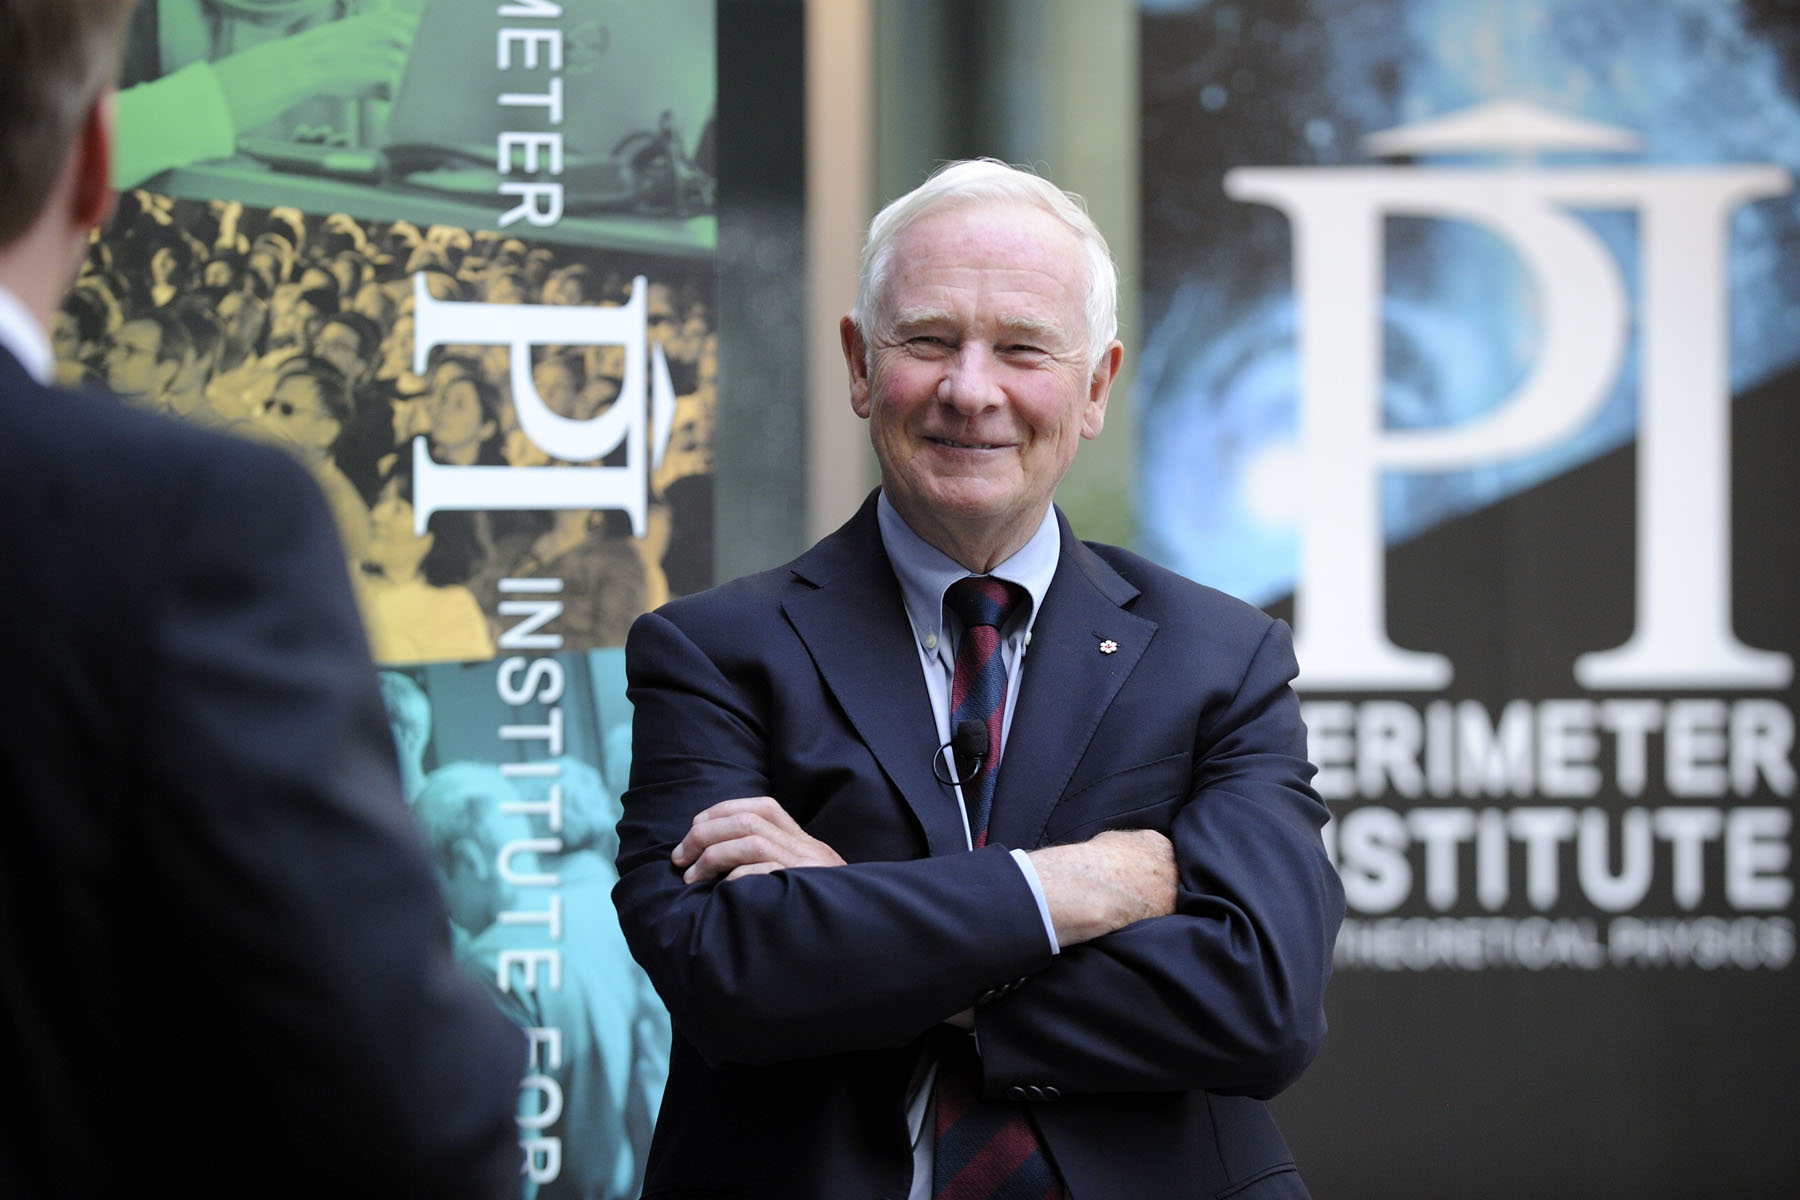 In the afternoon, the Governor General proceeded to the Perimeter Institute for Theoretical Physics where he previewed exhibits being featured in the upcoming BrainSTEM Festival, which will take place at the Institute and online from September 30 to October 6, 2013 (for the general public).